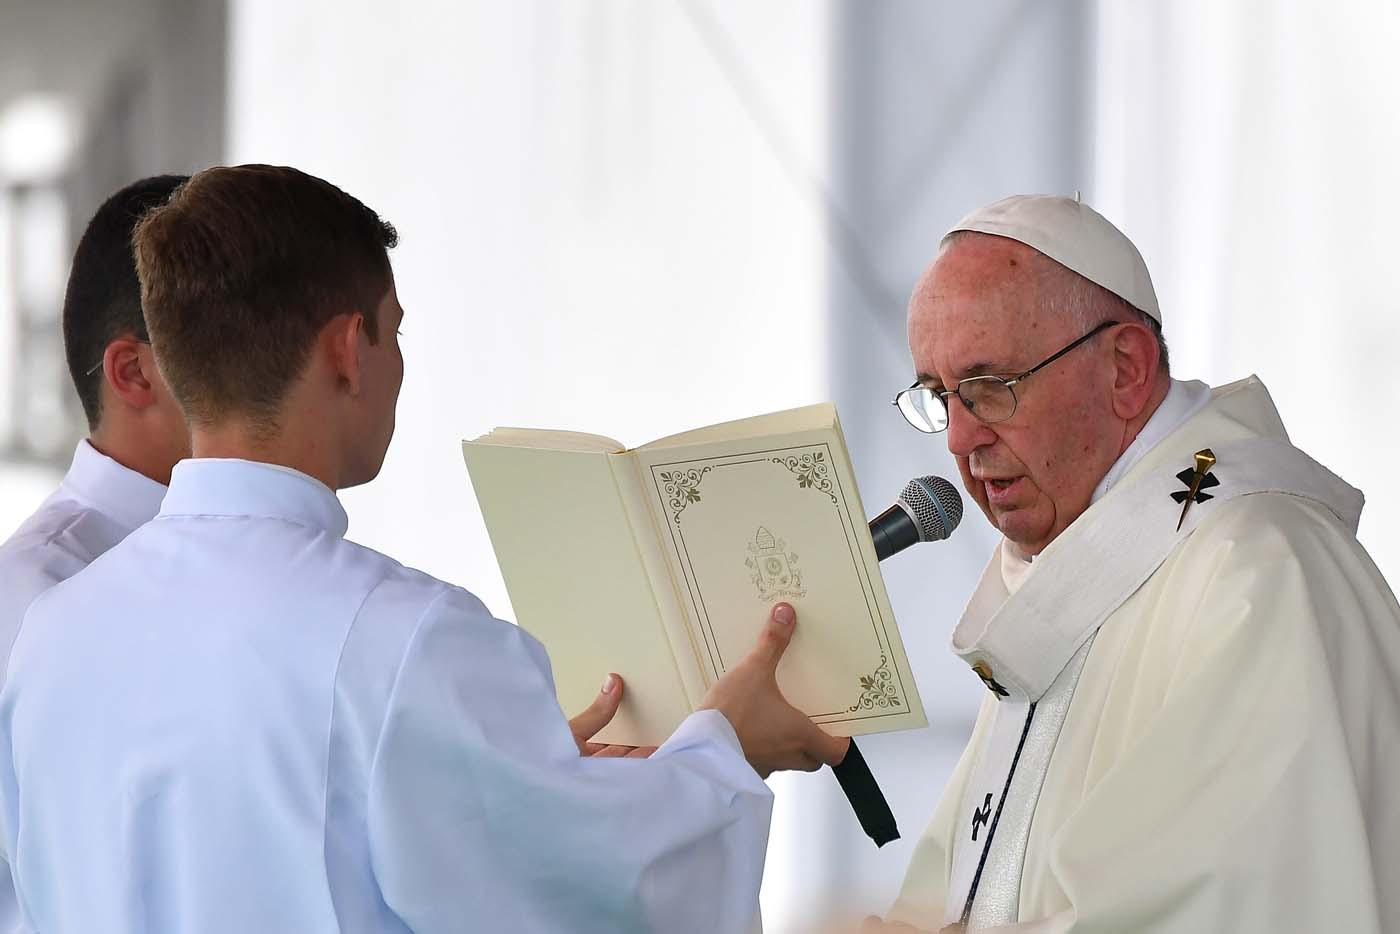 Pope Francis (R) gives mass at the Enrique Olaya Herrera airport in Medellin, Colombia, on September 9, 2017. Pope Francis visits the Colombian city of Medellin, former stronghold of the late drug baron Pablo Escobar, on the fourth day of a papal tour to promote peace. / AFP PHOTO / Alberto PIZZOLI